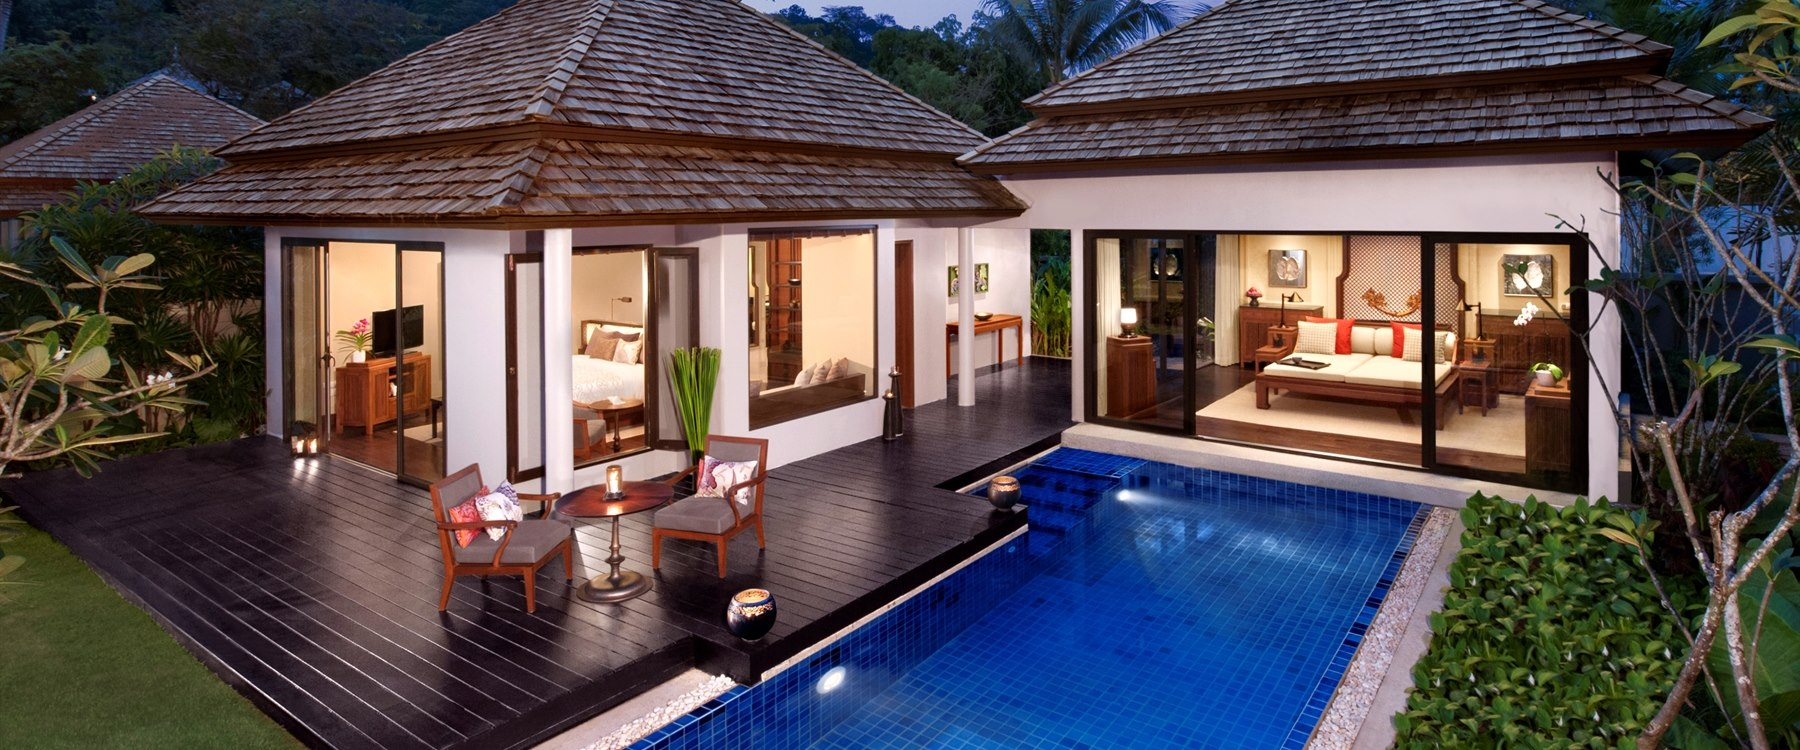 Beach Villa at Night at Anantara Layan Phuket Resort, Thailand